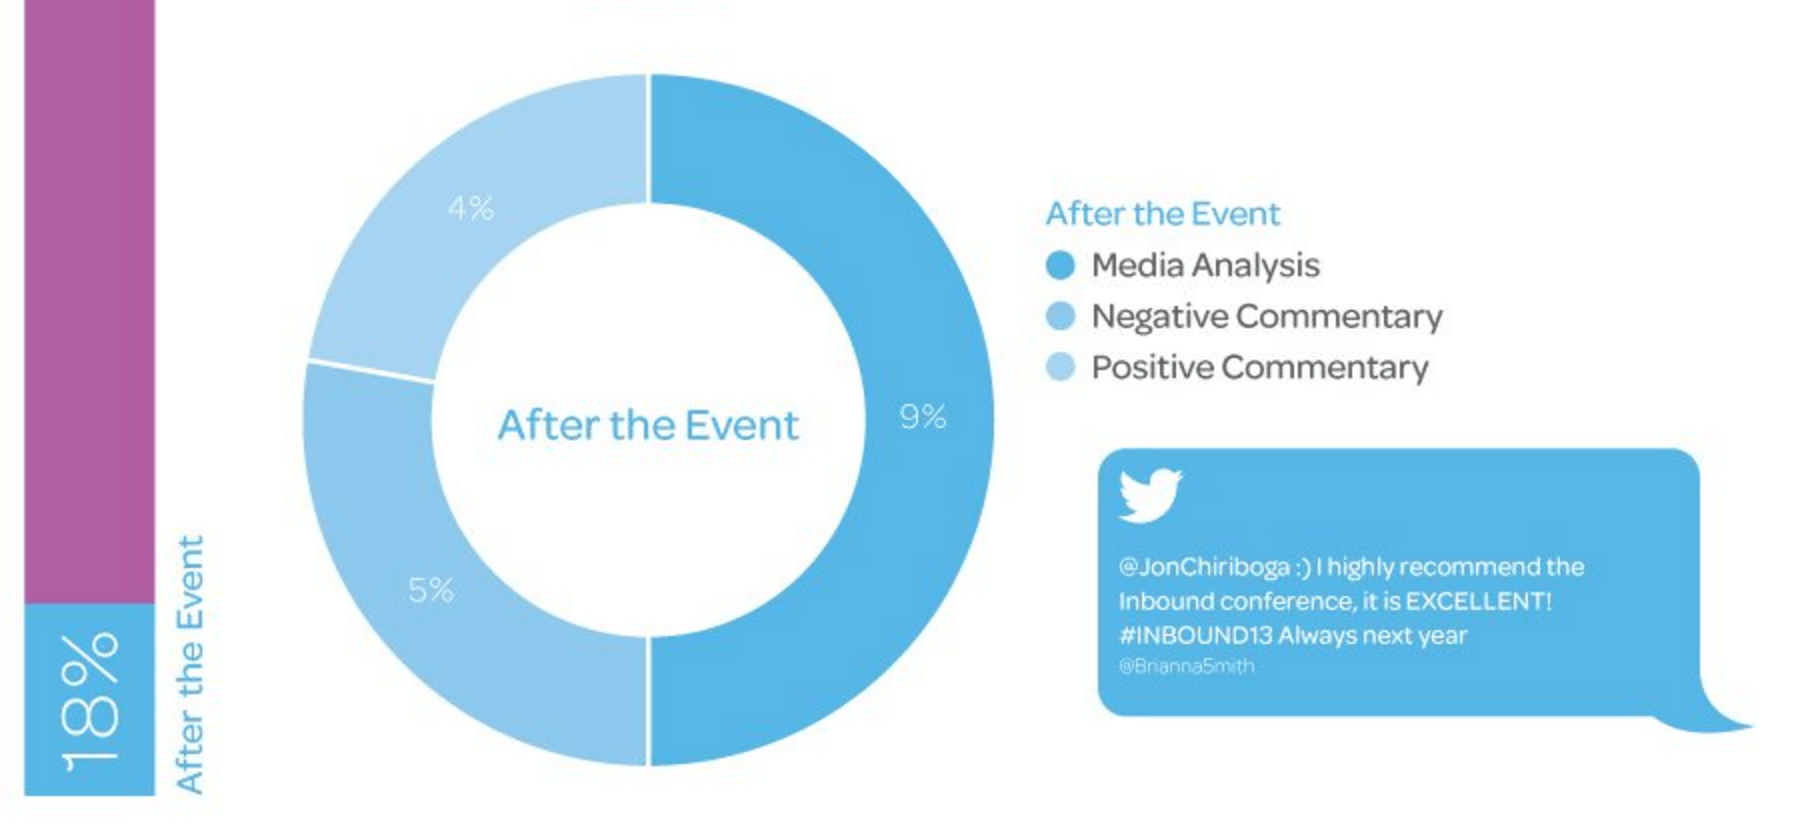 Social media event marketing - after the event